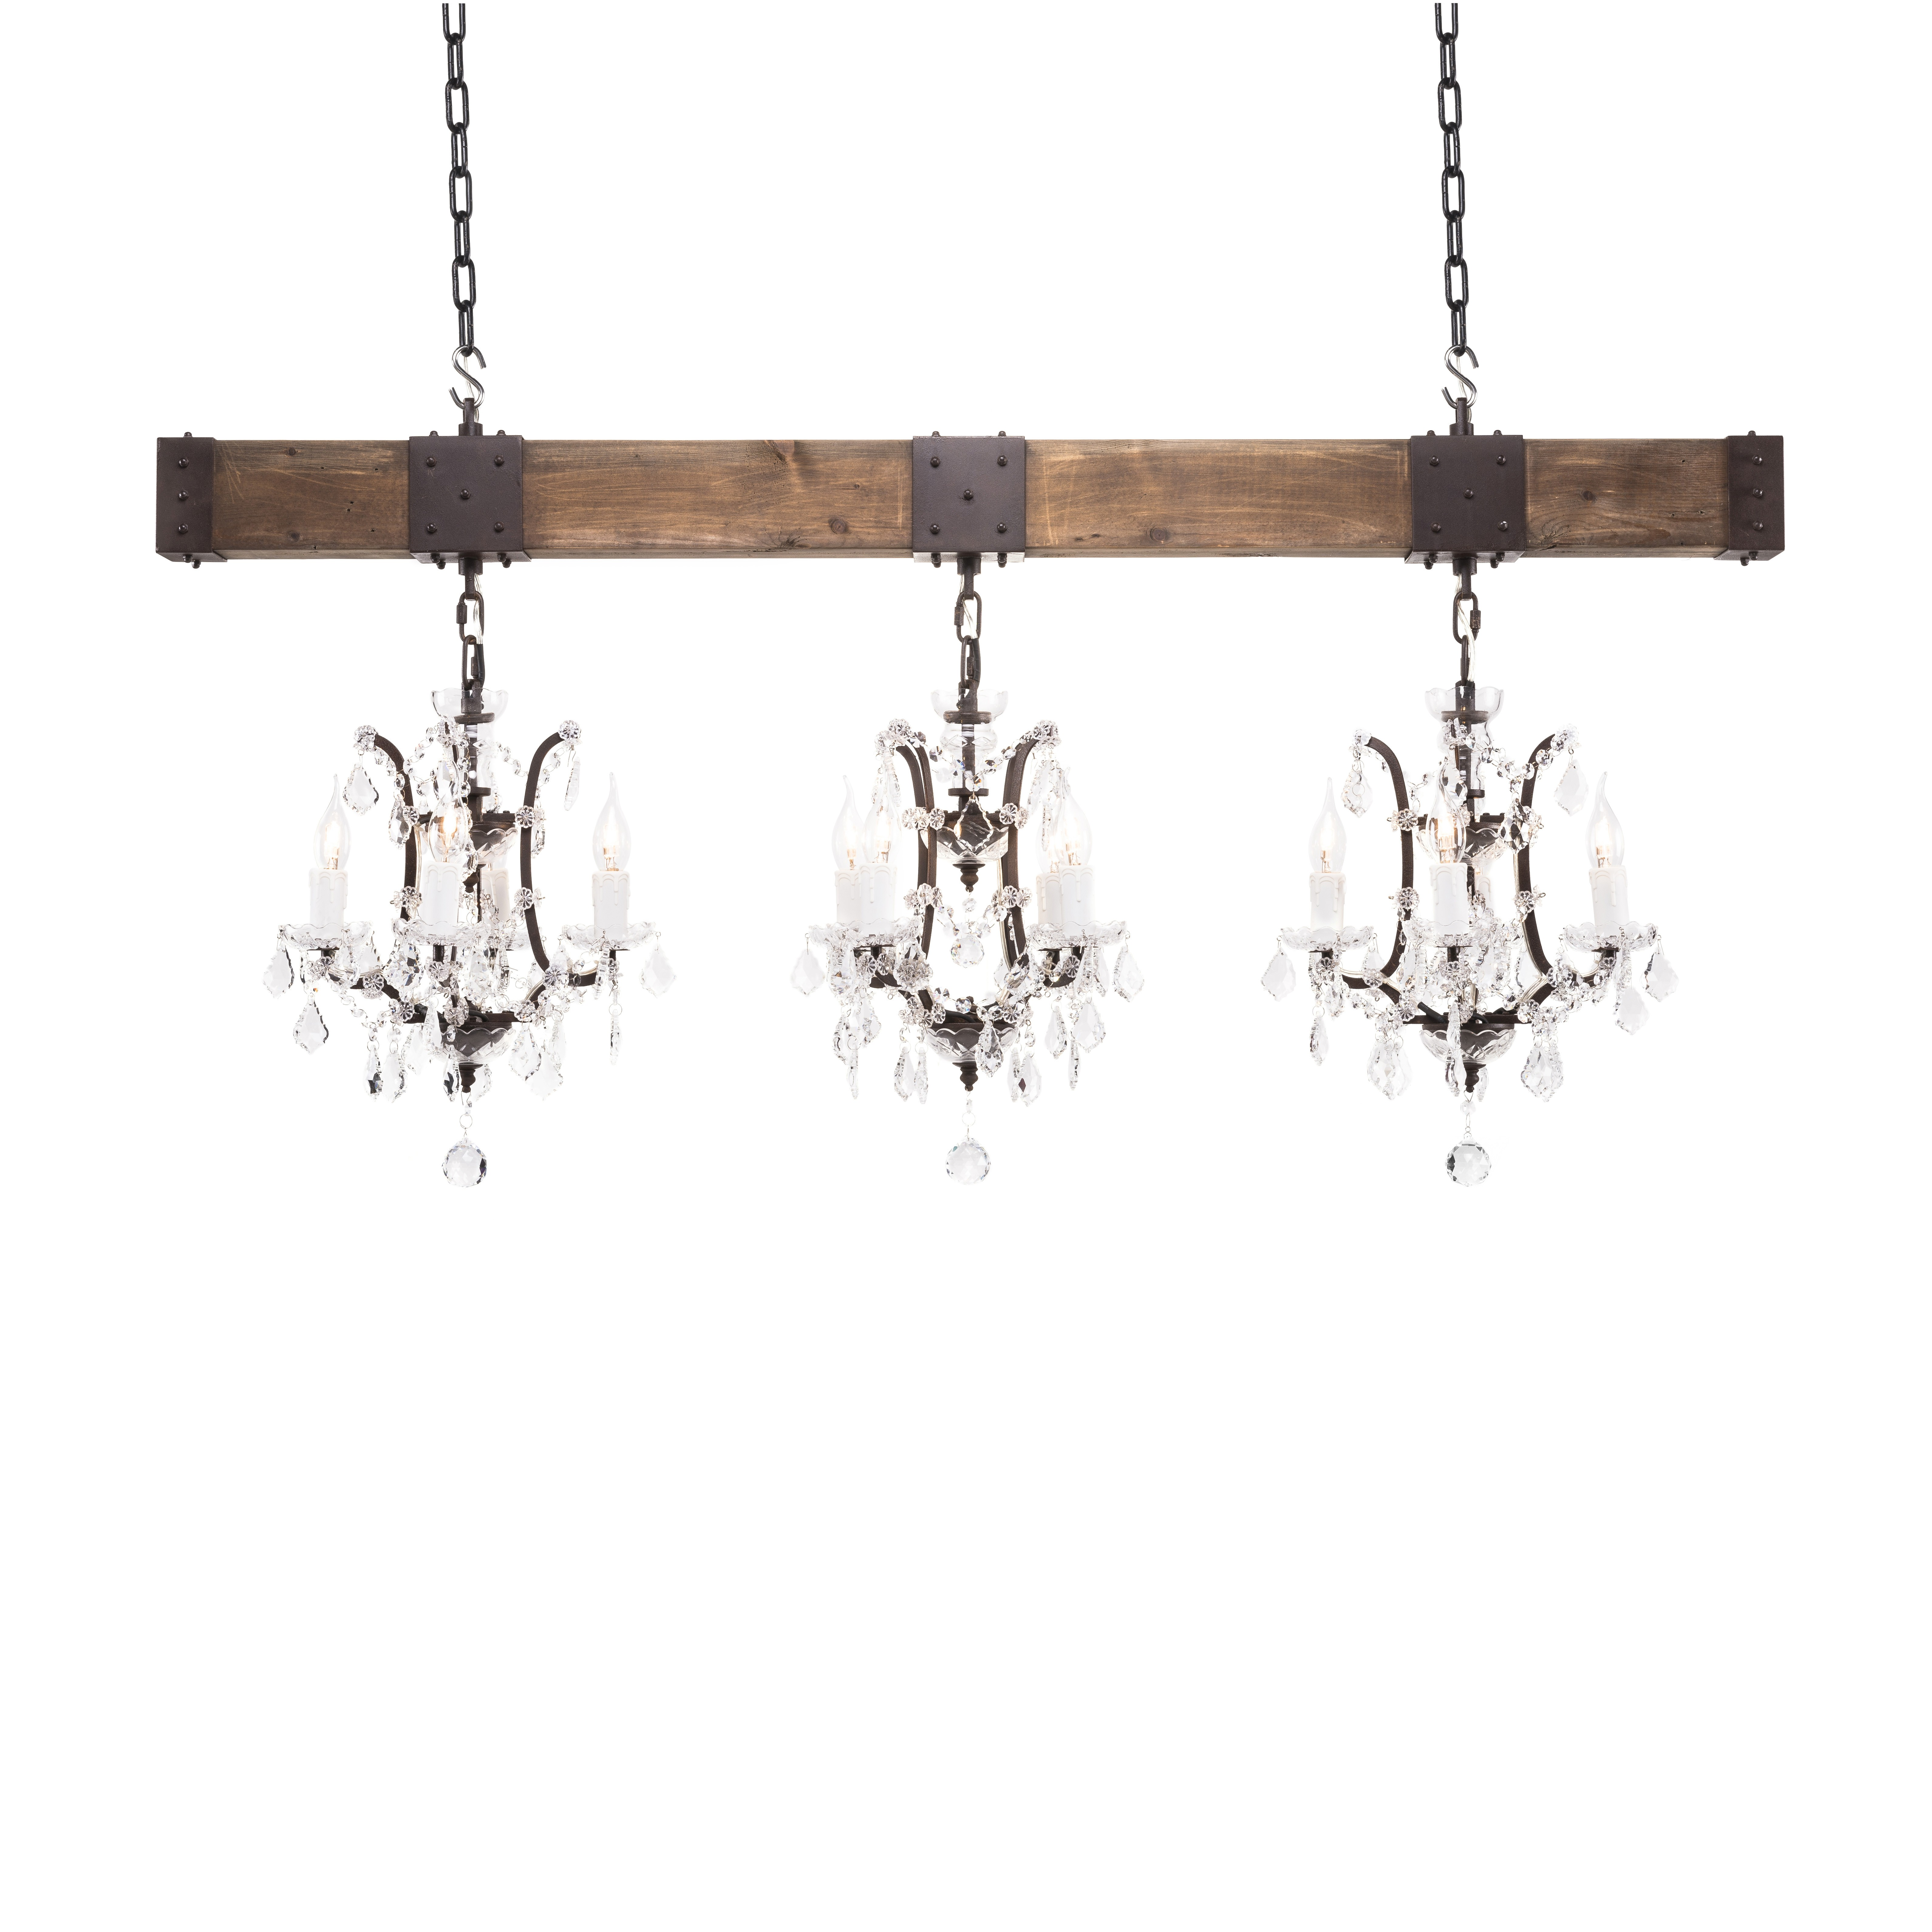 axe_crystal_rectangular_chandelier_145cm-antique_rust